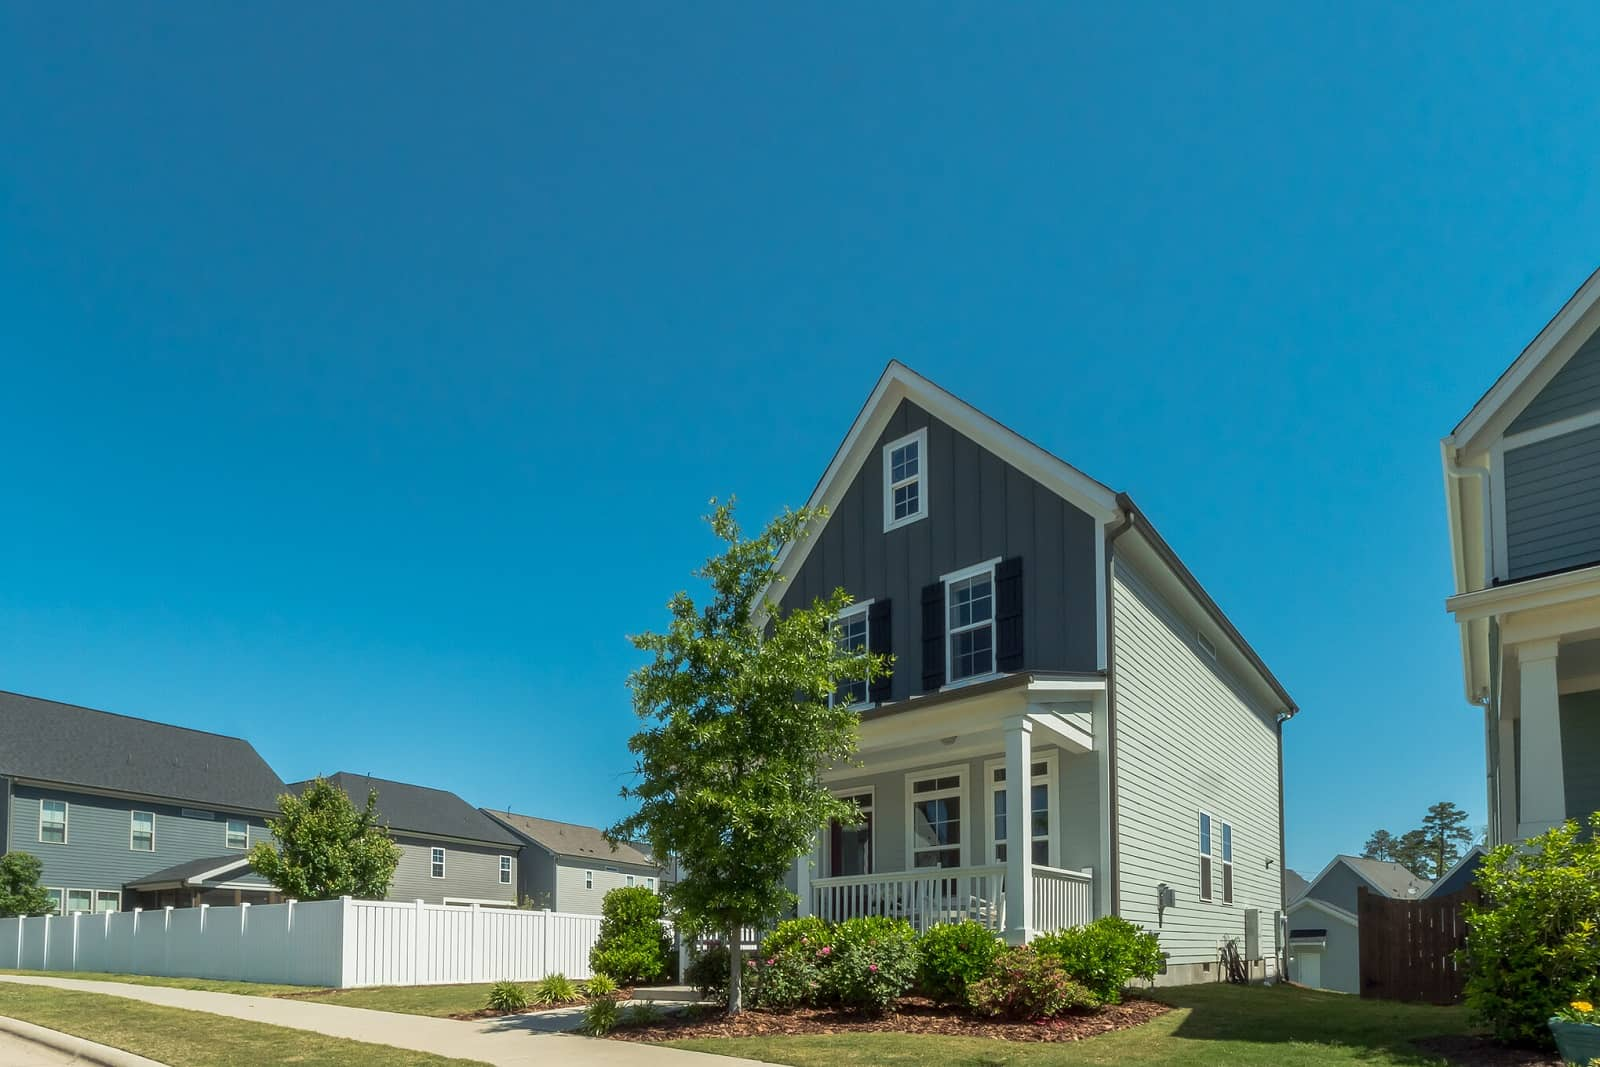 Real Estate Photography in Chapel Hill - NC - USA - Front View